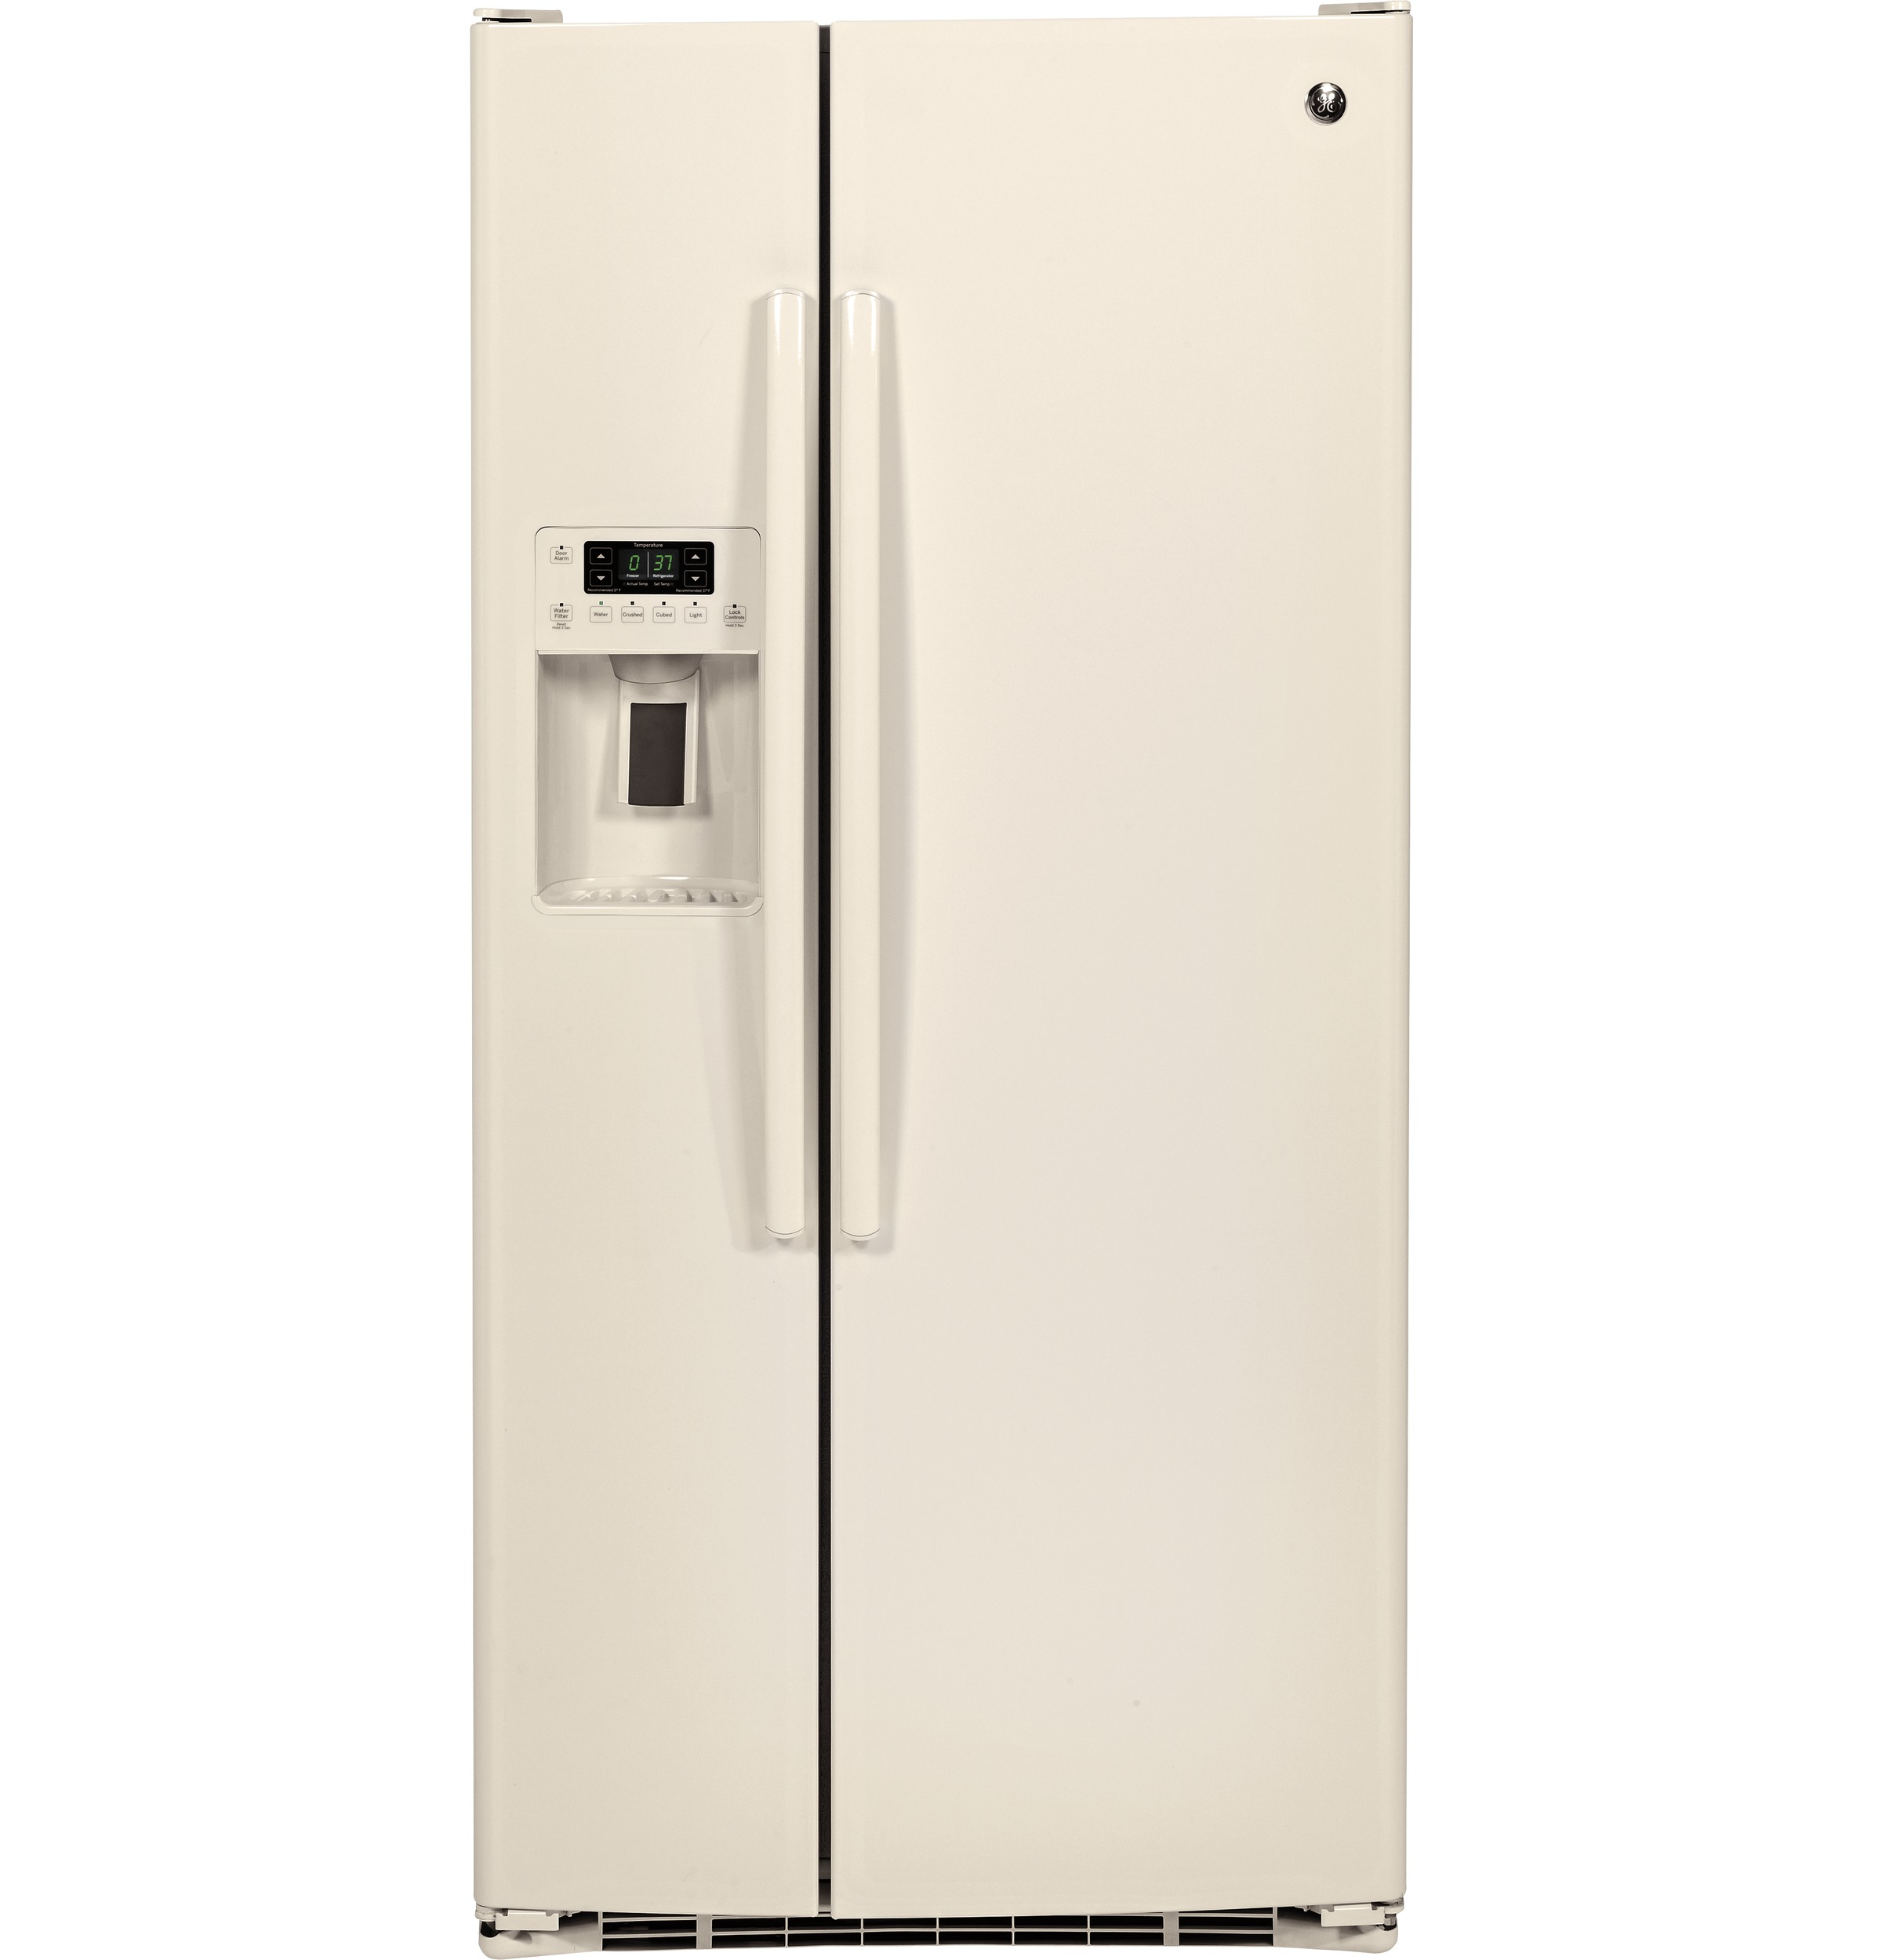 GE GE® ENERGY STAR® 23.2 Cu. Ft. Side-By-Side Refrigerator